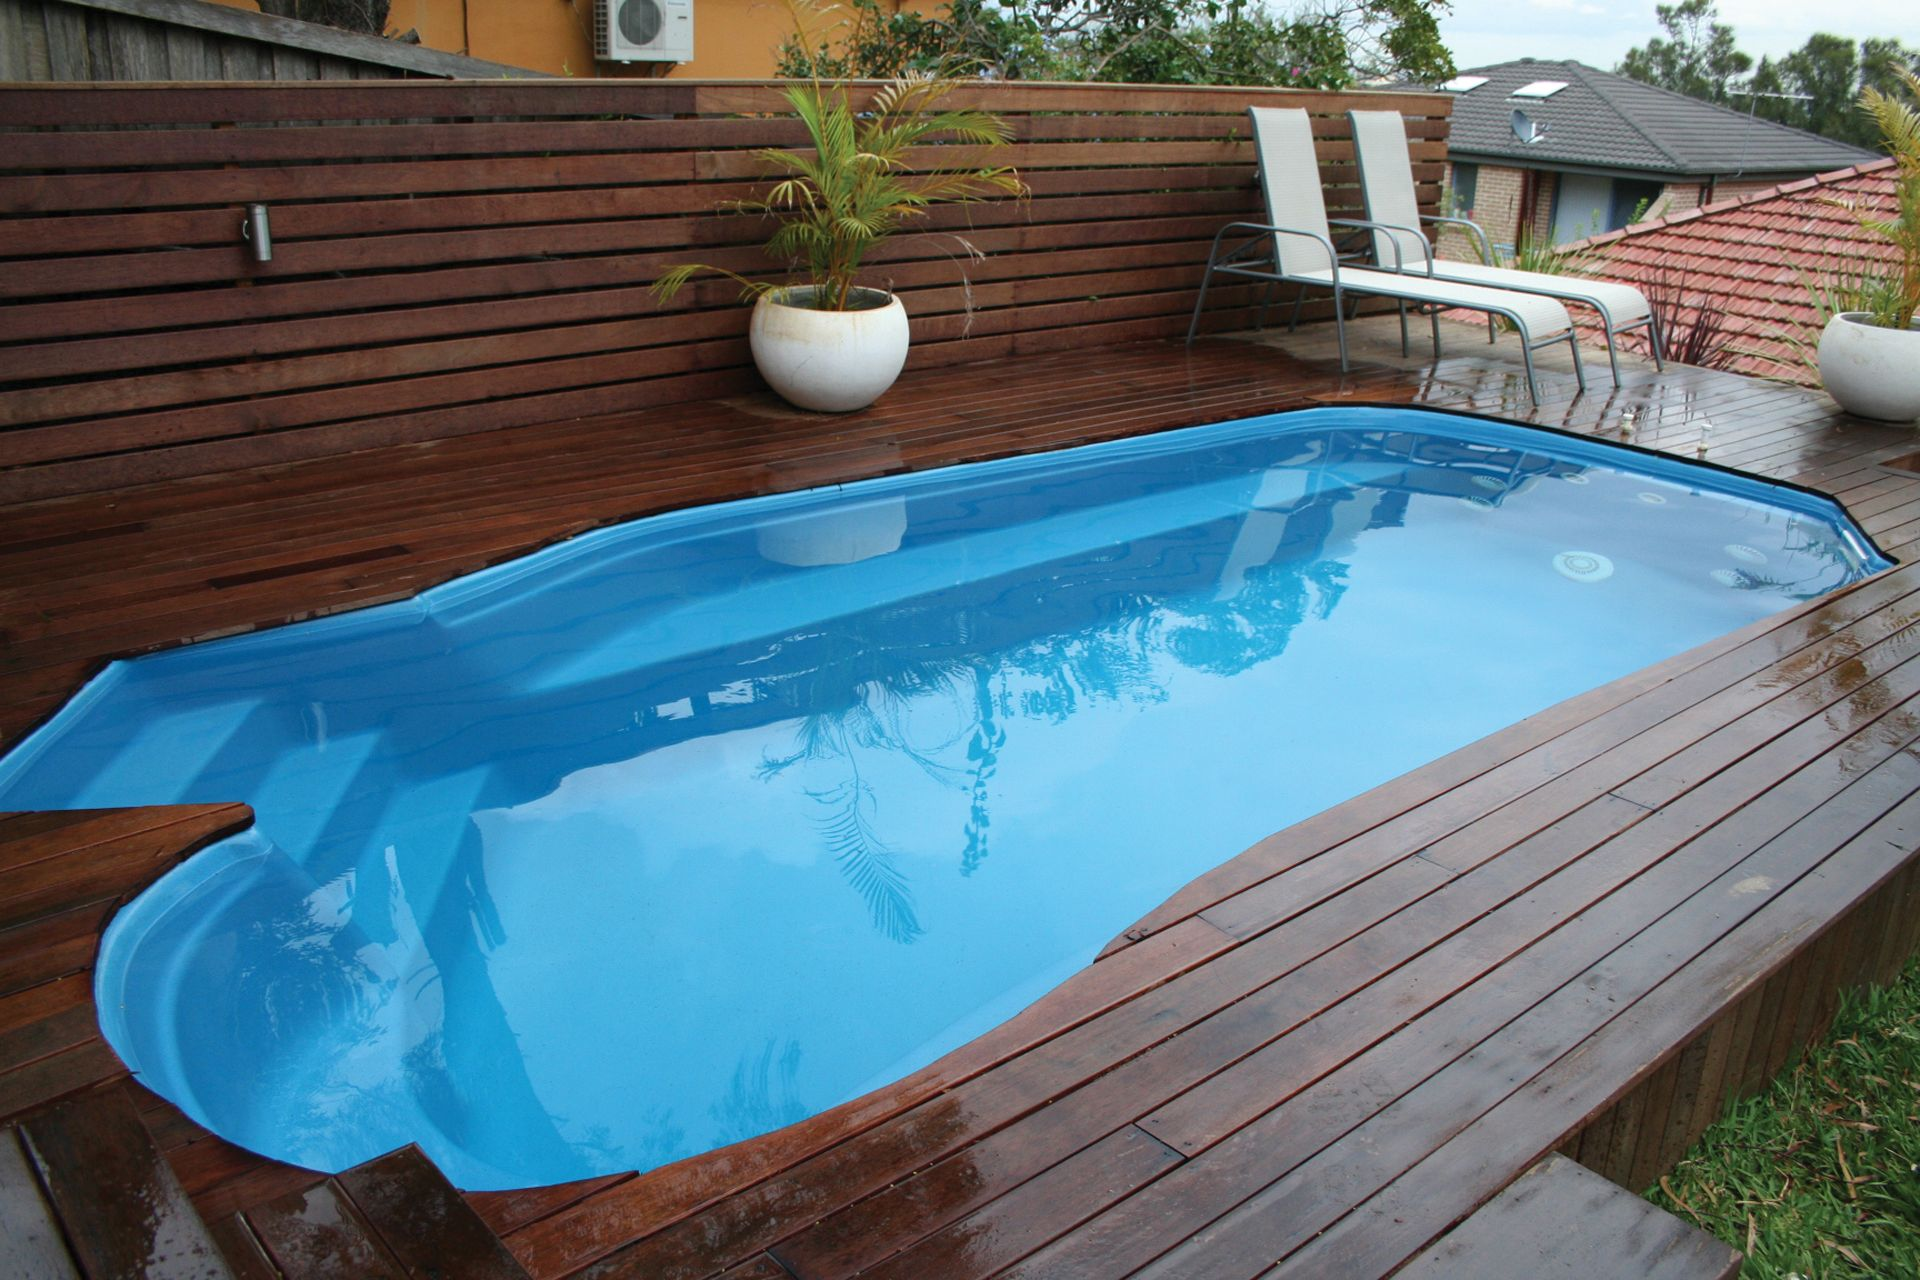 Capri Plunge Pool The Distinctive Shape Of The Narellan Pools